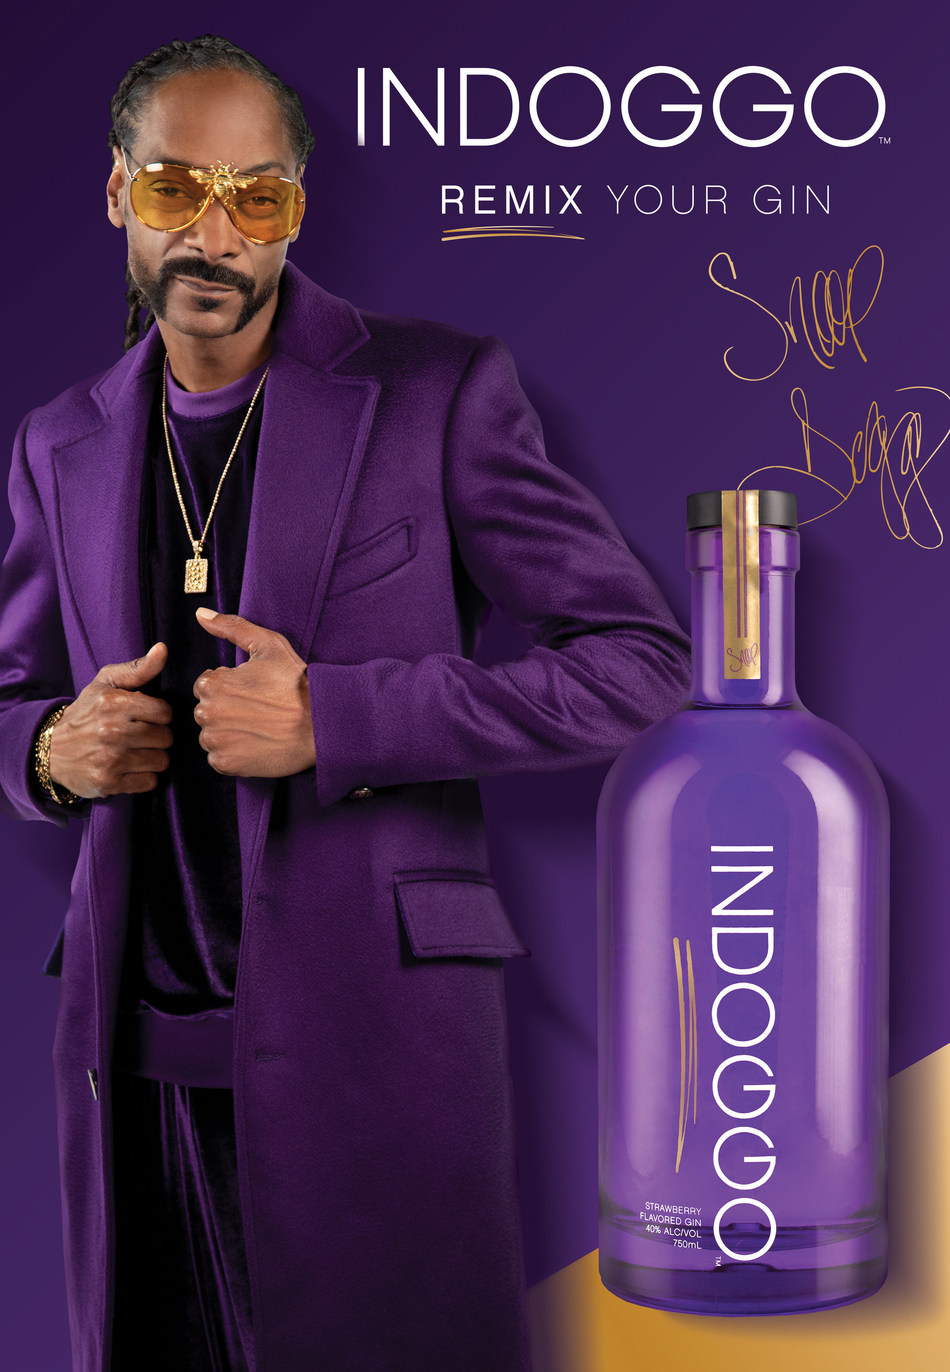 Snoop-Dogg-INDOGGO-Gin